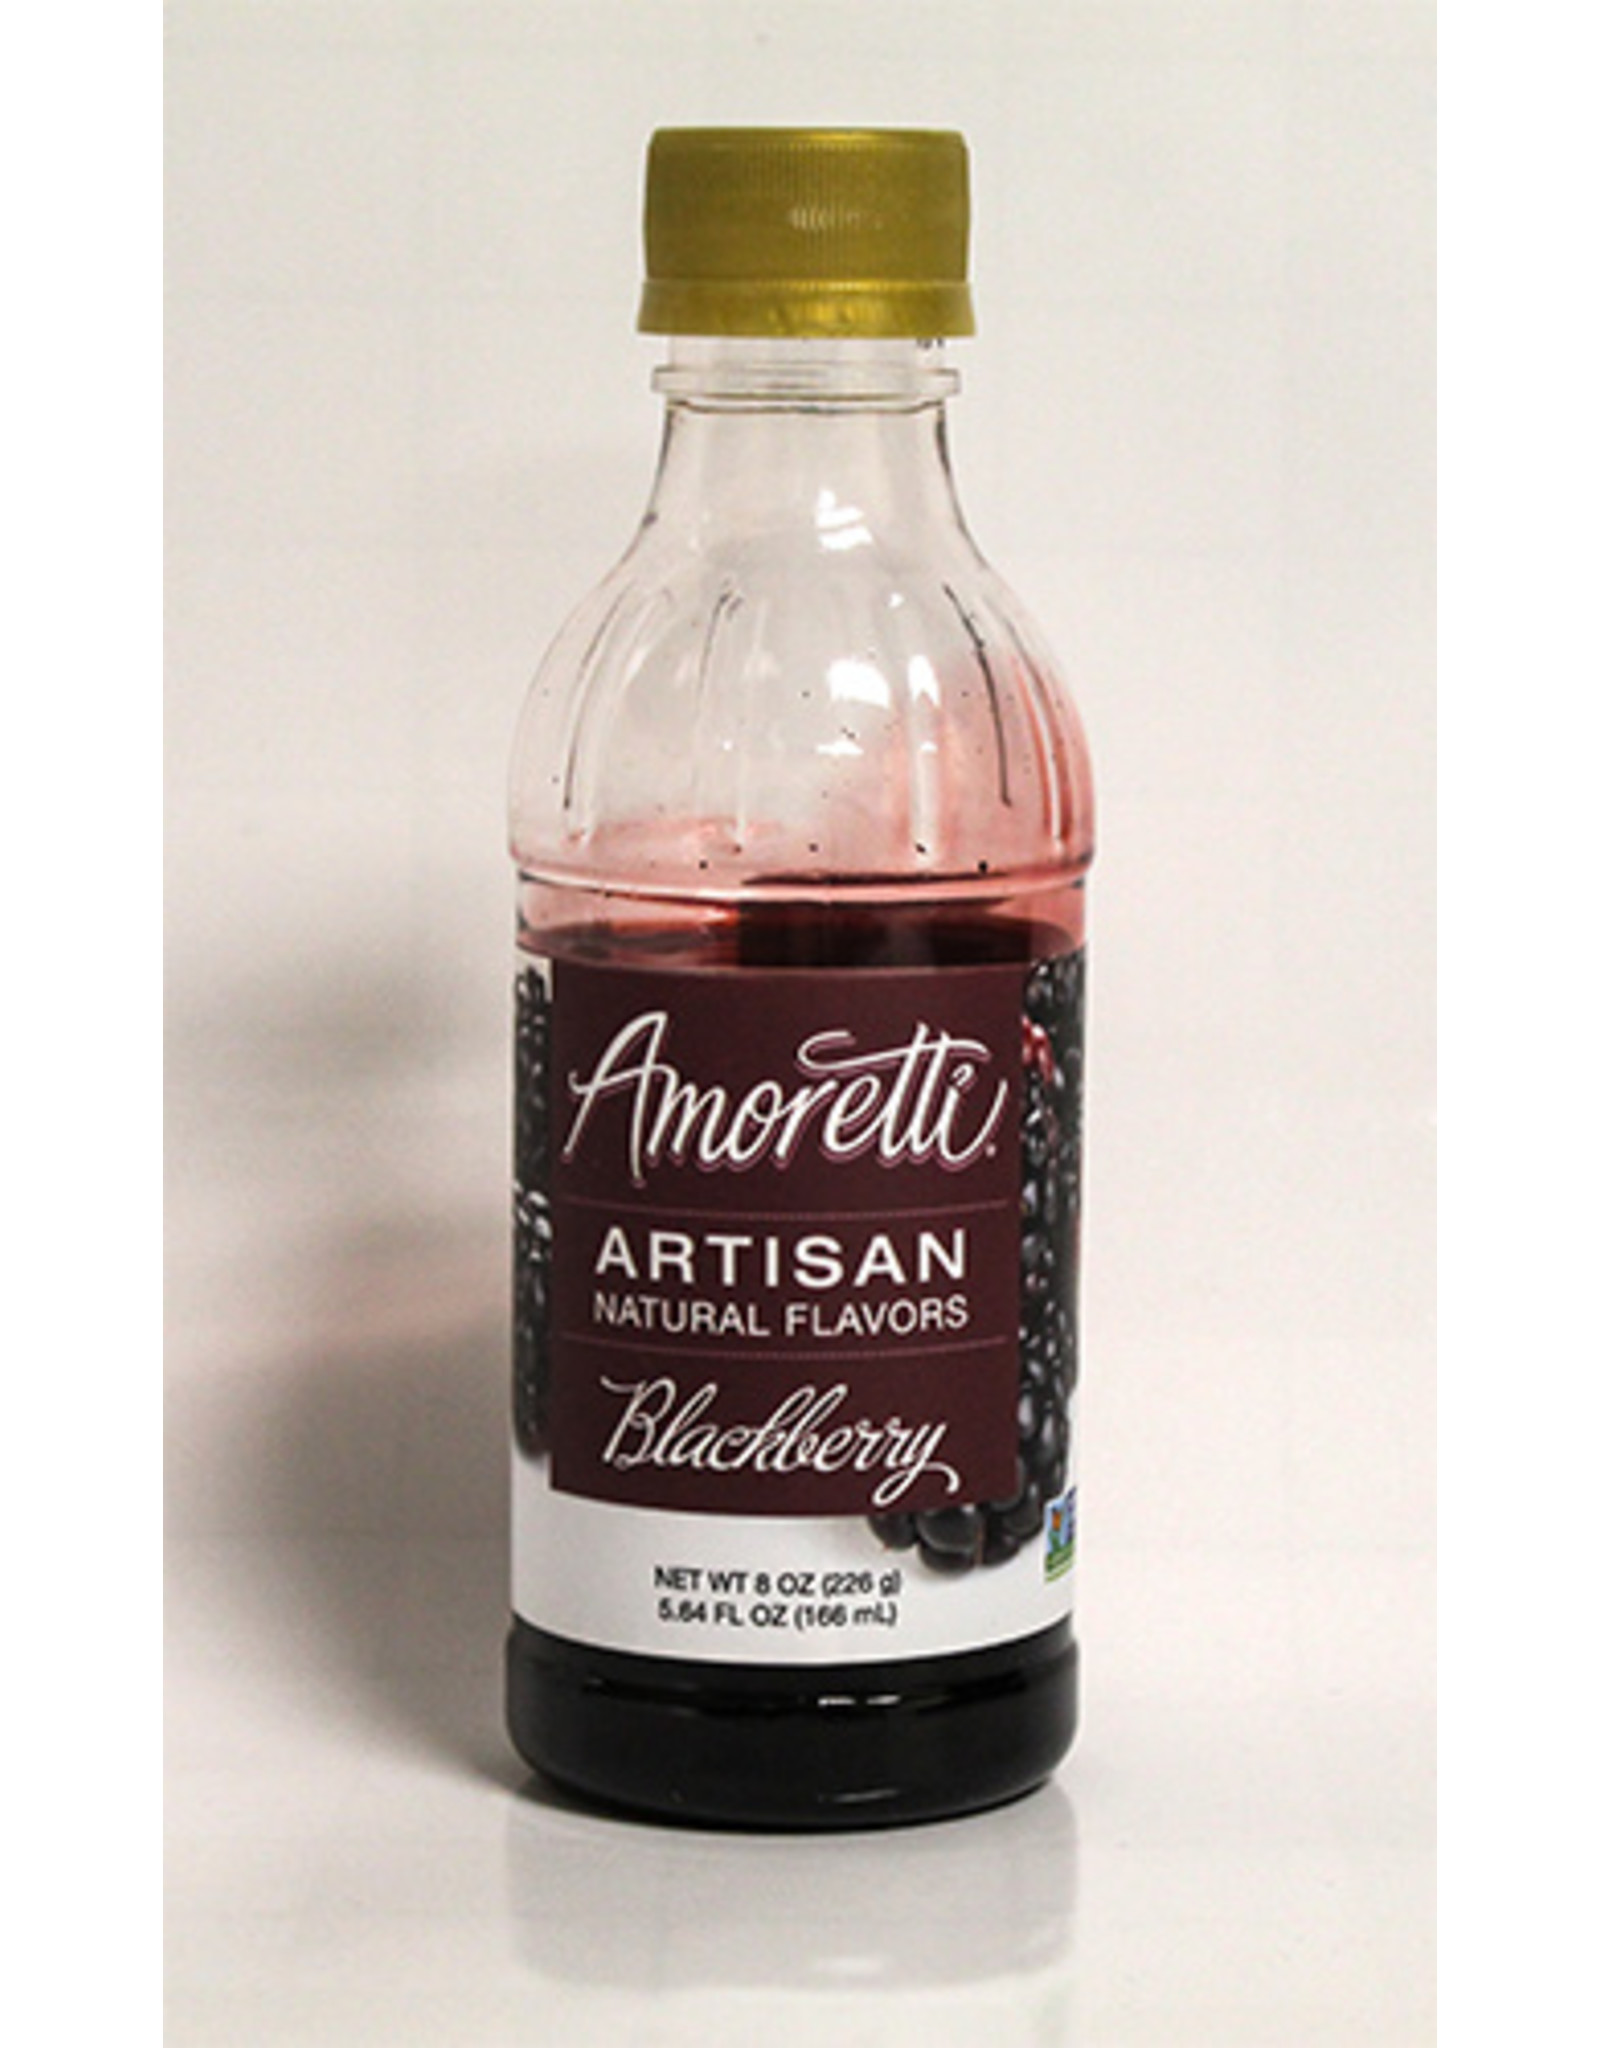 AMORETTI BLACKBERRY ARTISAN PUREE